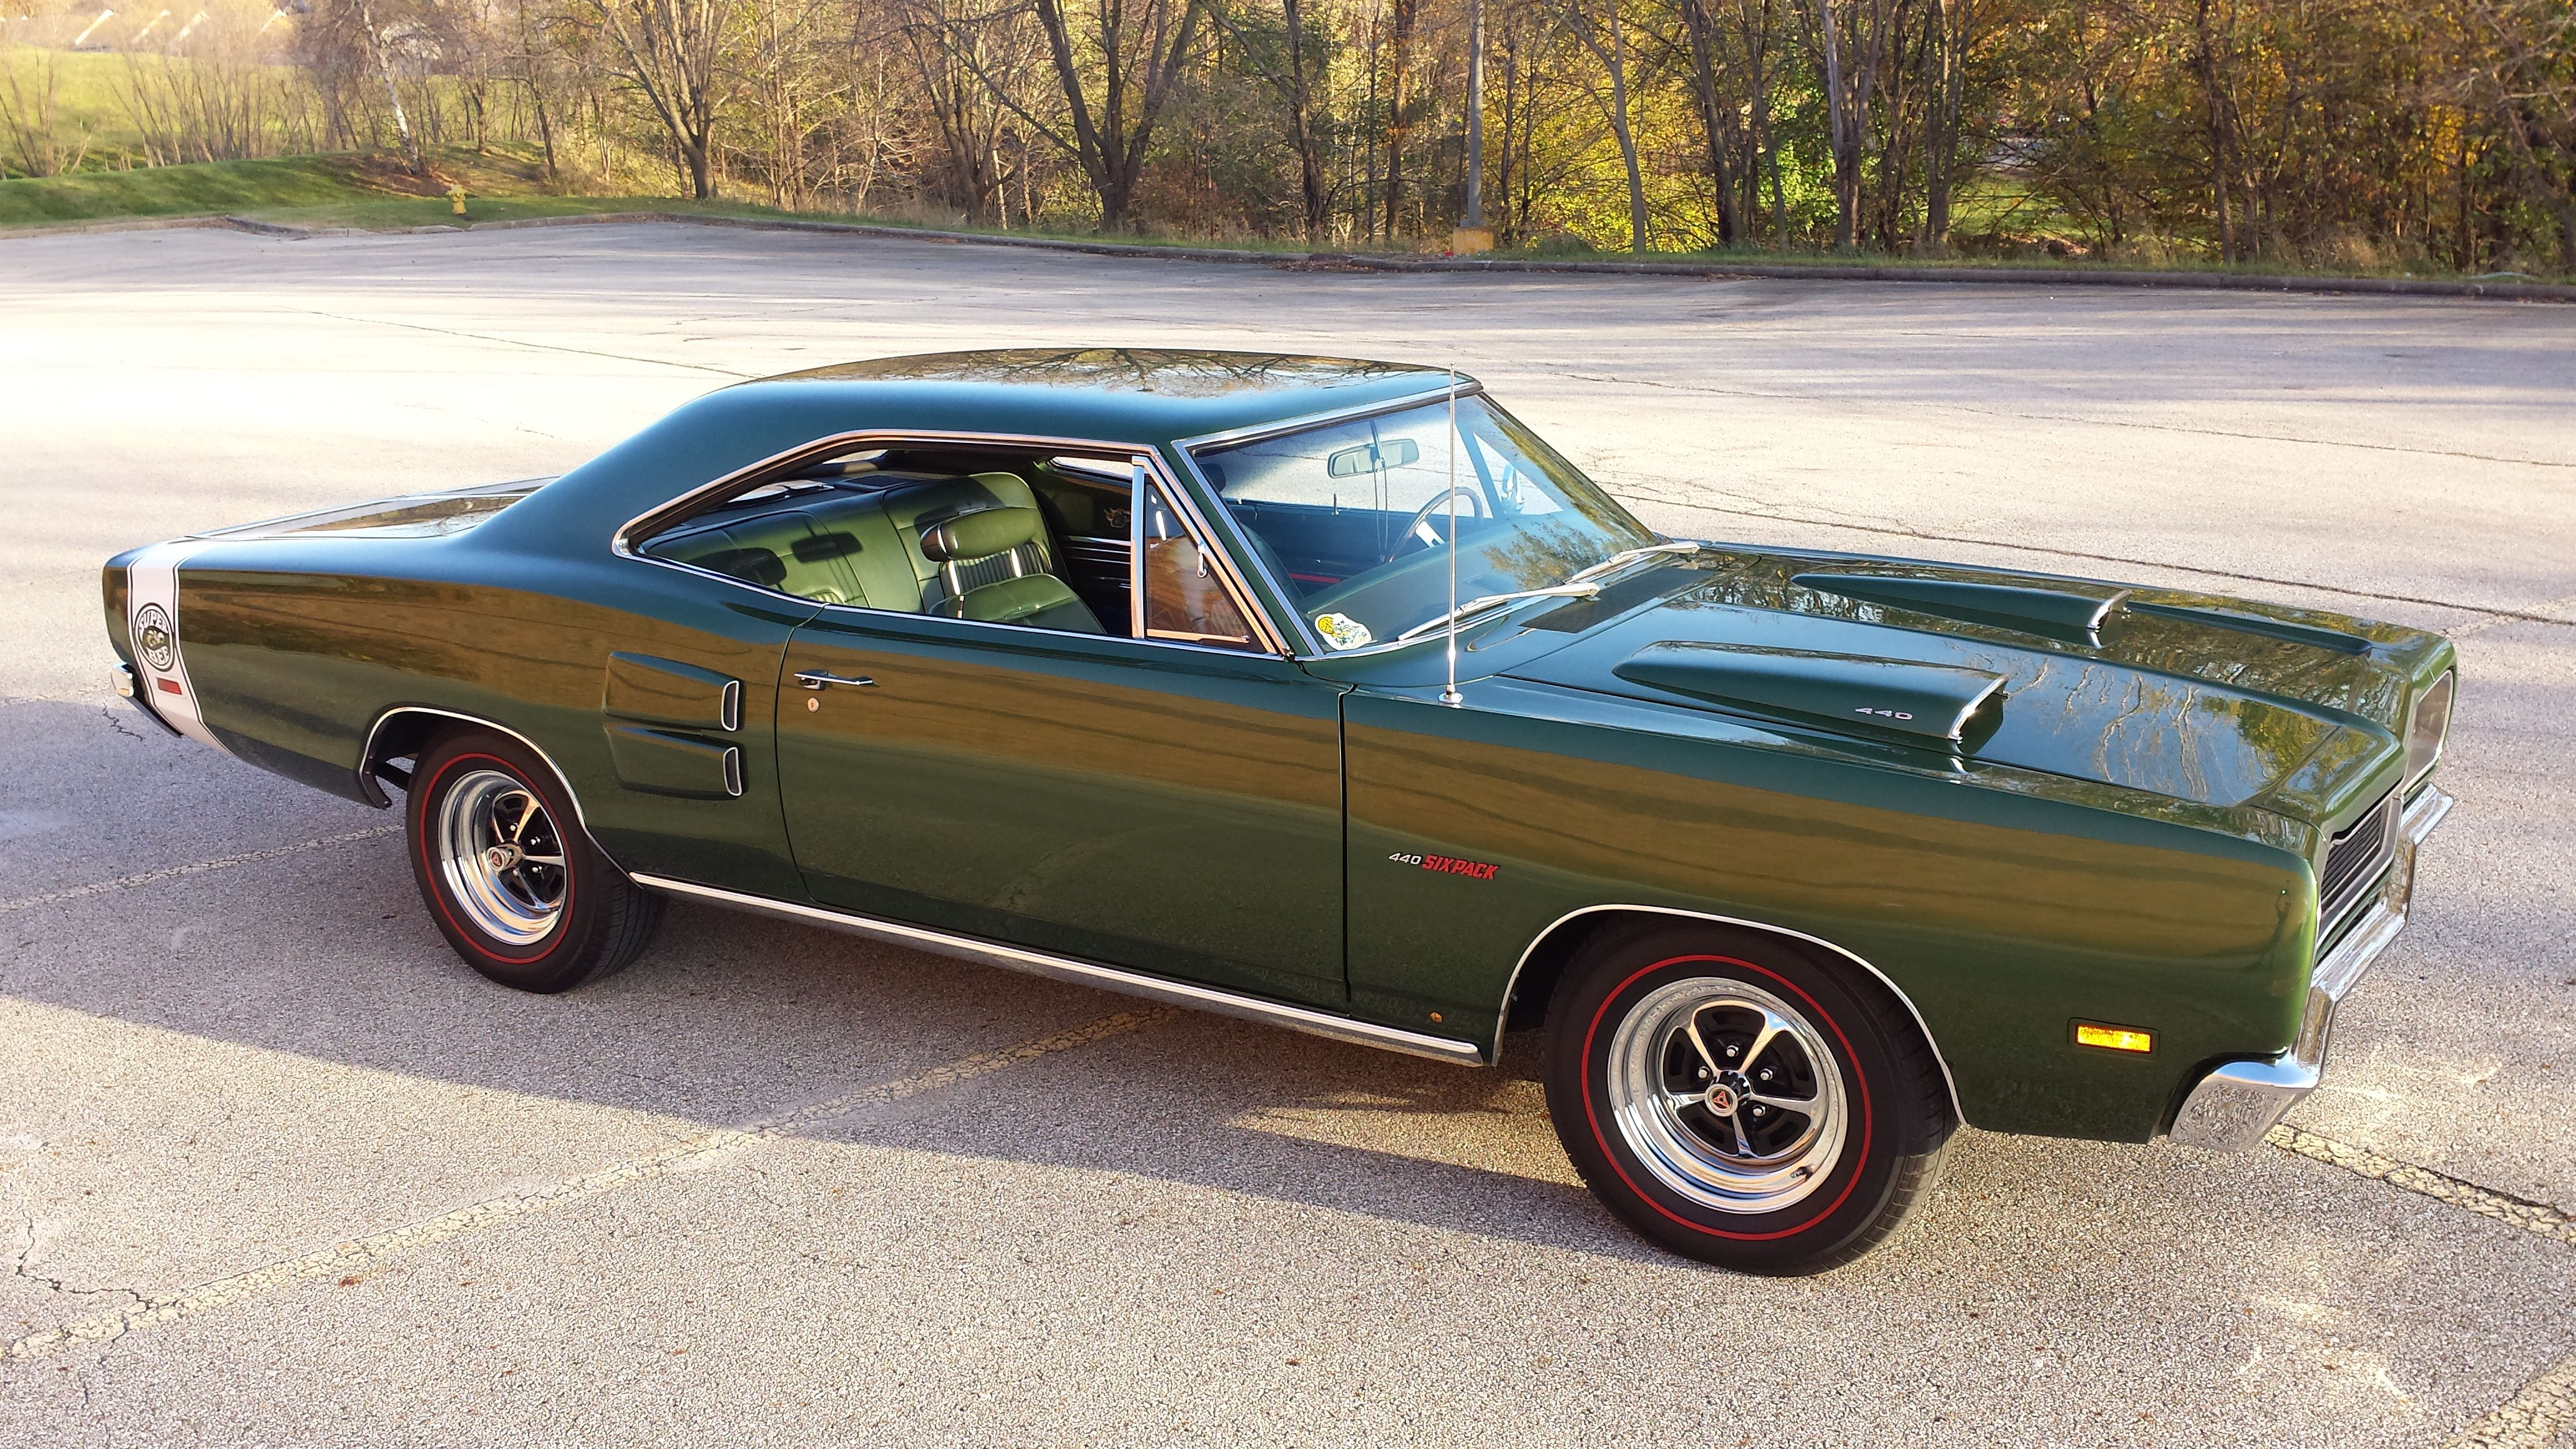 1969 Dodge Coronet Super Bee Classic Cars Muscle Plymouth Muscle Cars Chrysler Cars